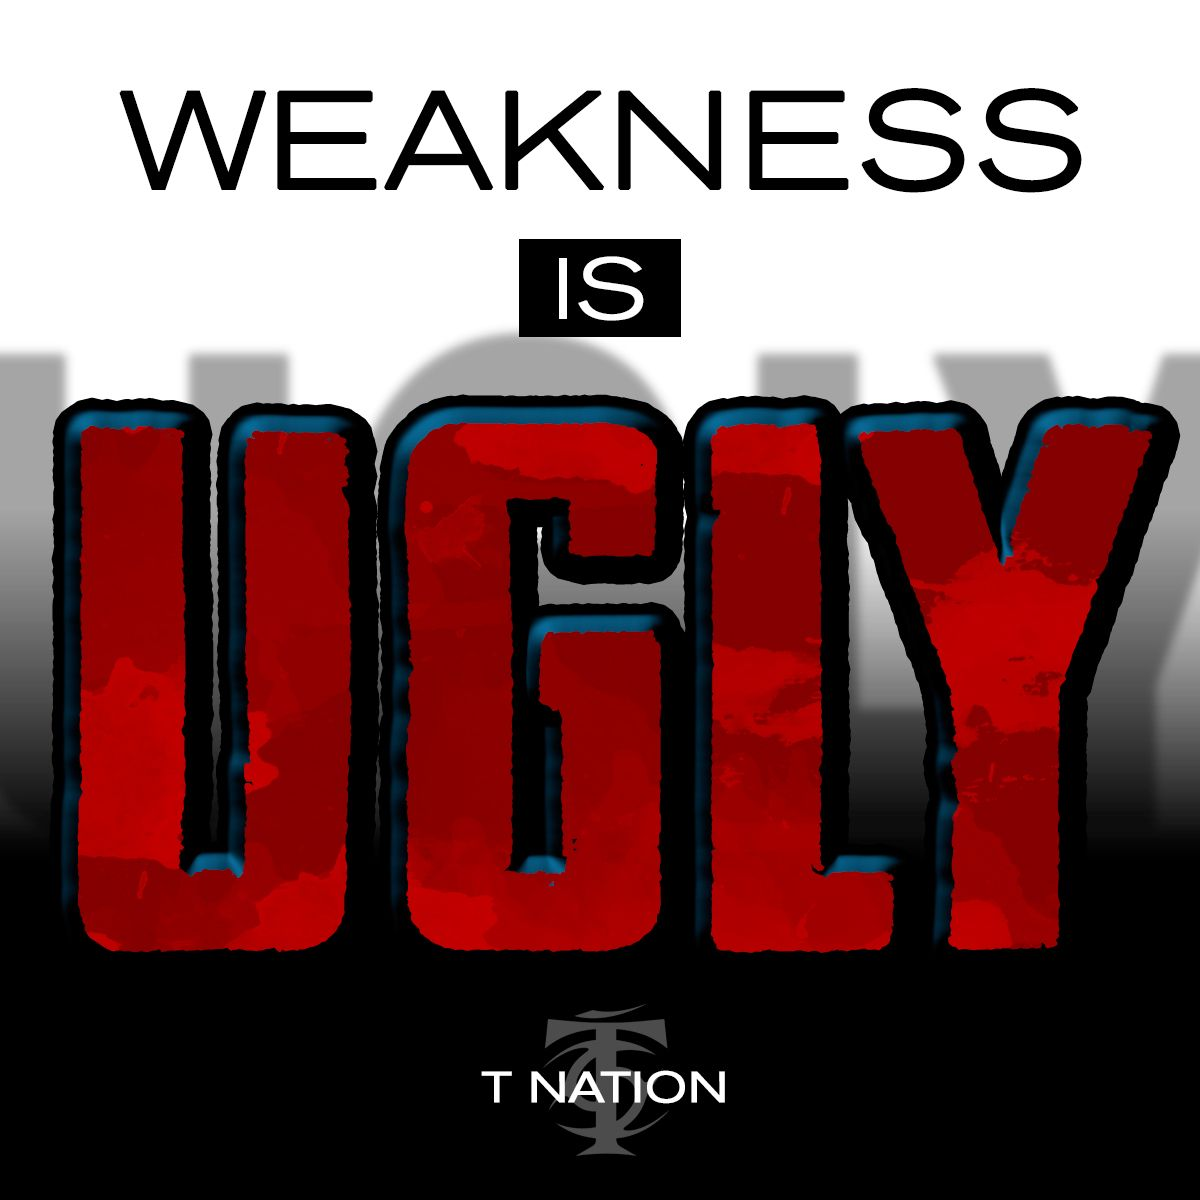 T-Nation.com. #weakness #ugly